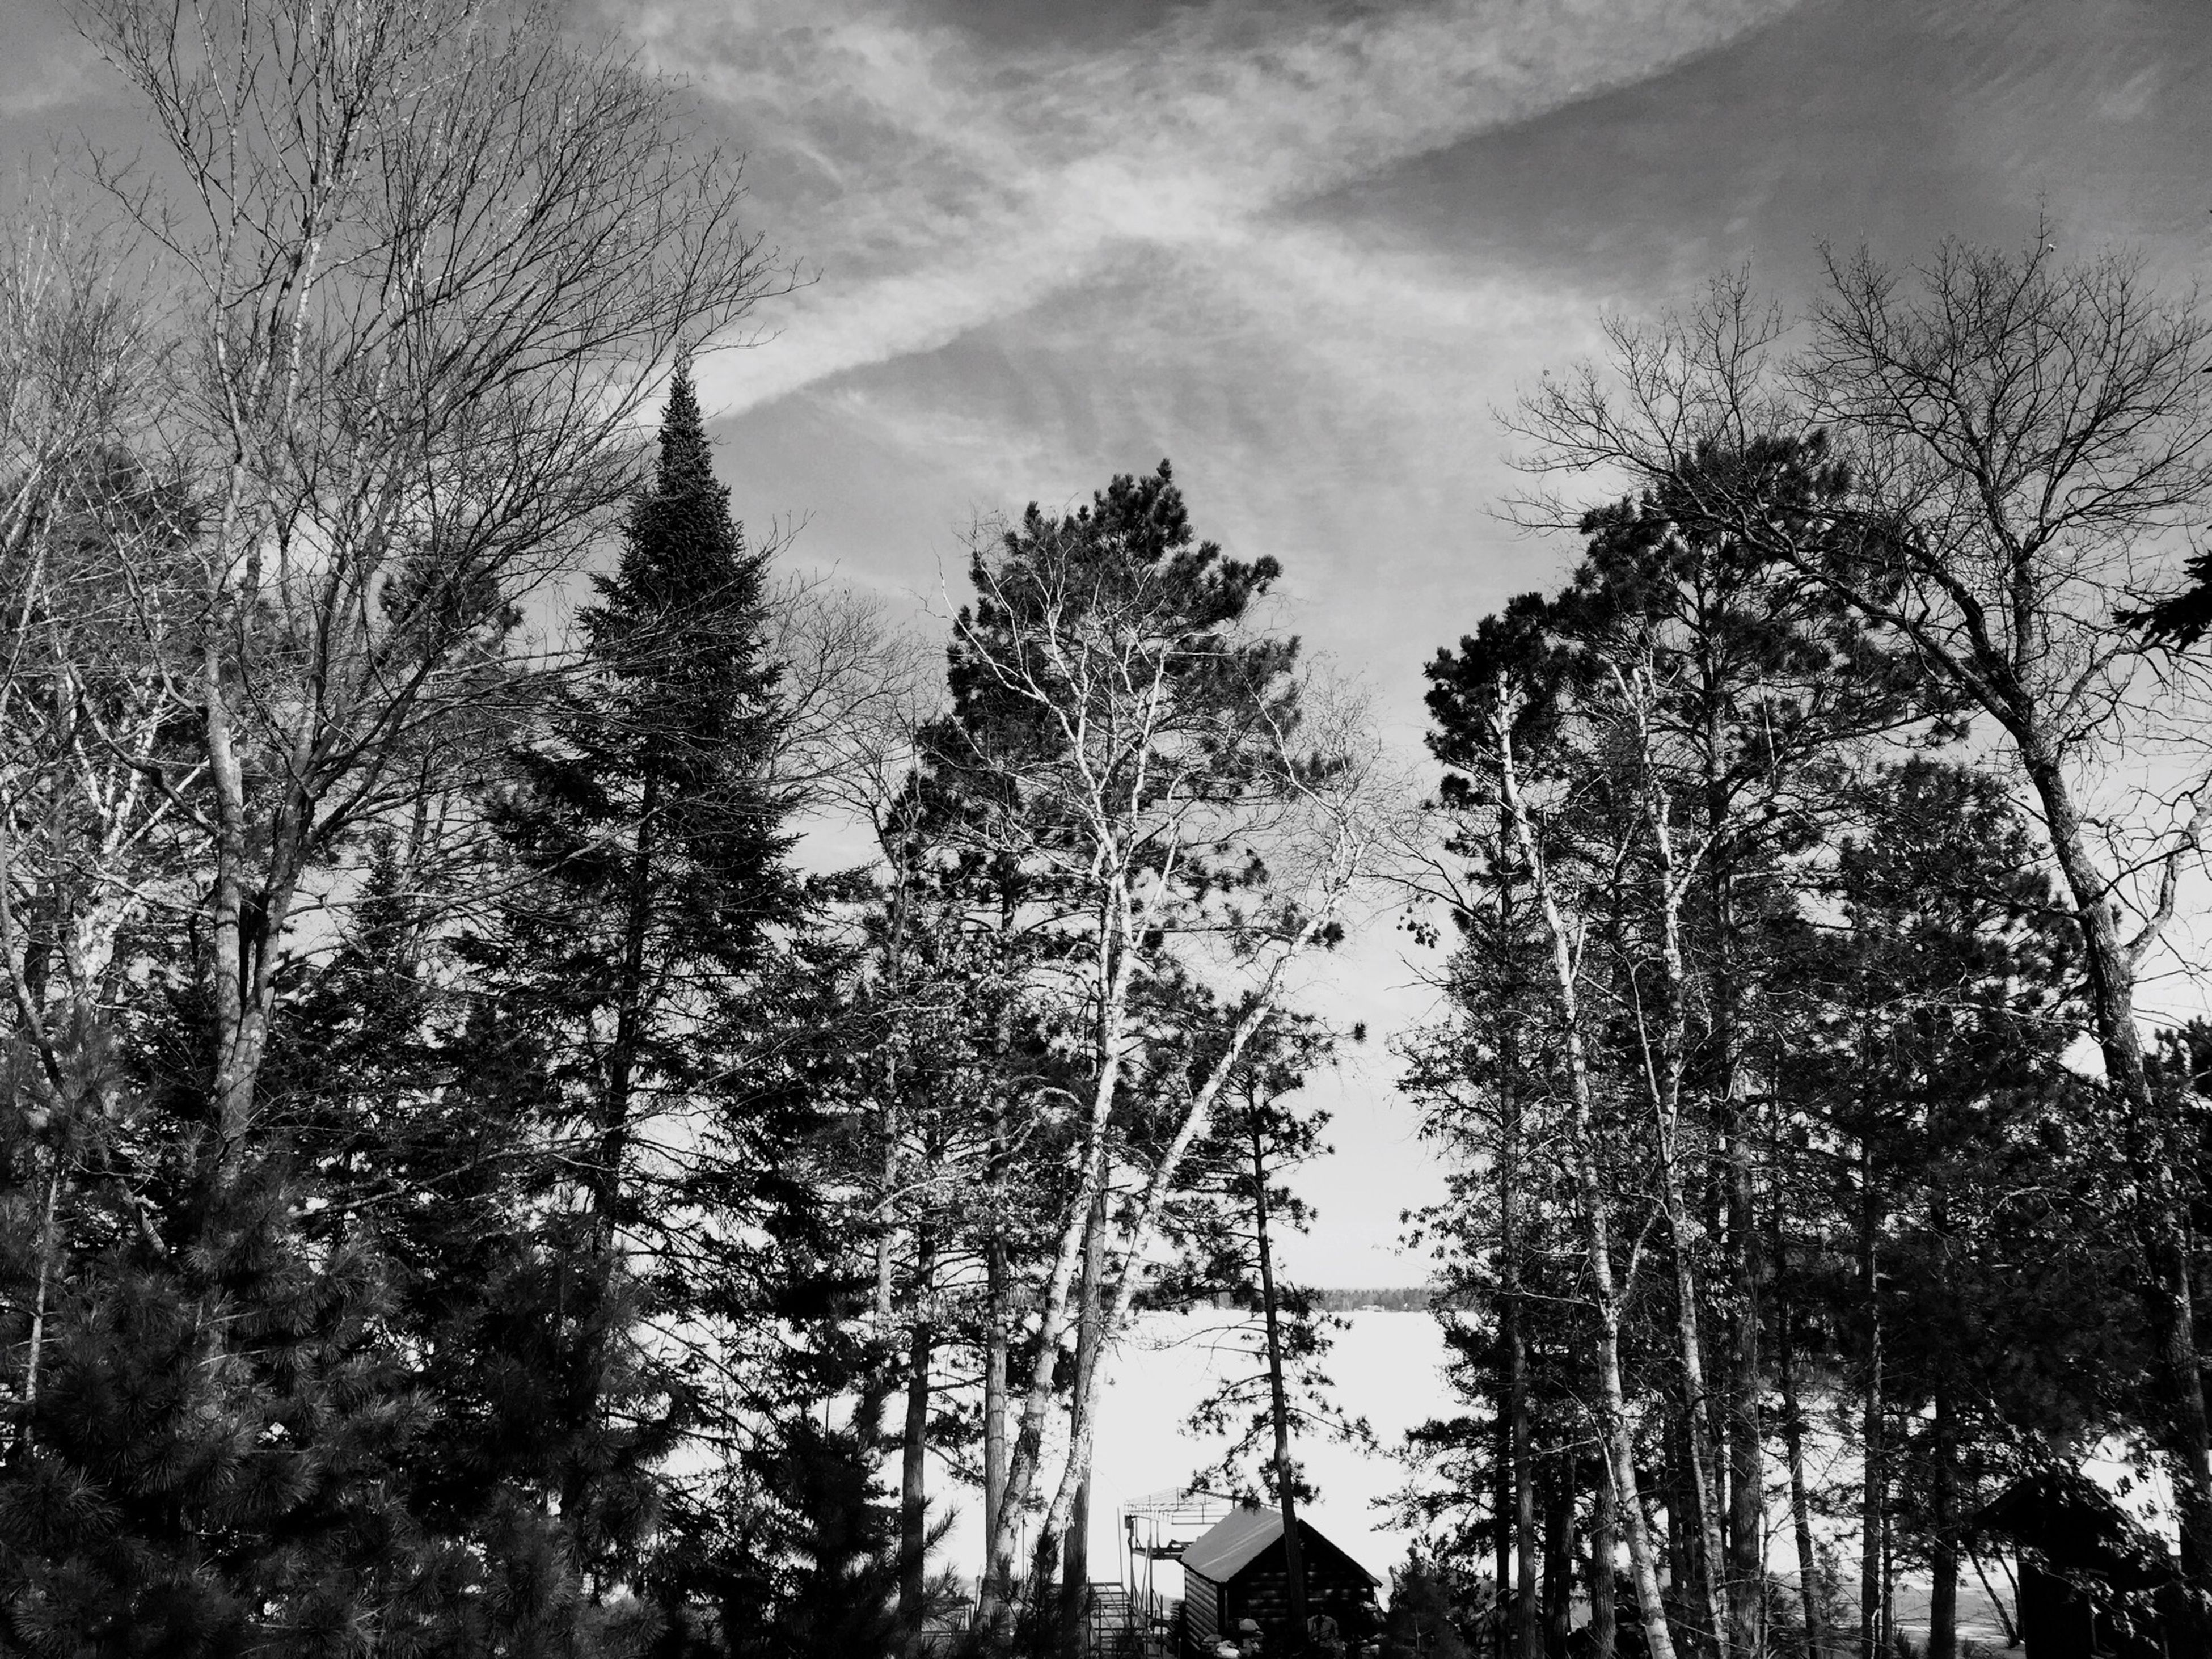 tree, sky, low angle view, branch, tranquility, bare tree, growth, nature, tranquil scene, beauty in nature, scenics, forest, built structure, building exterior, day, outdoors, no people, architecture, tree trunk, woodland